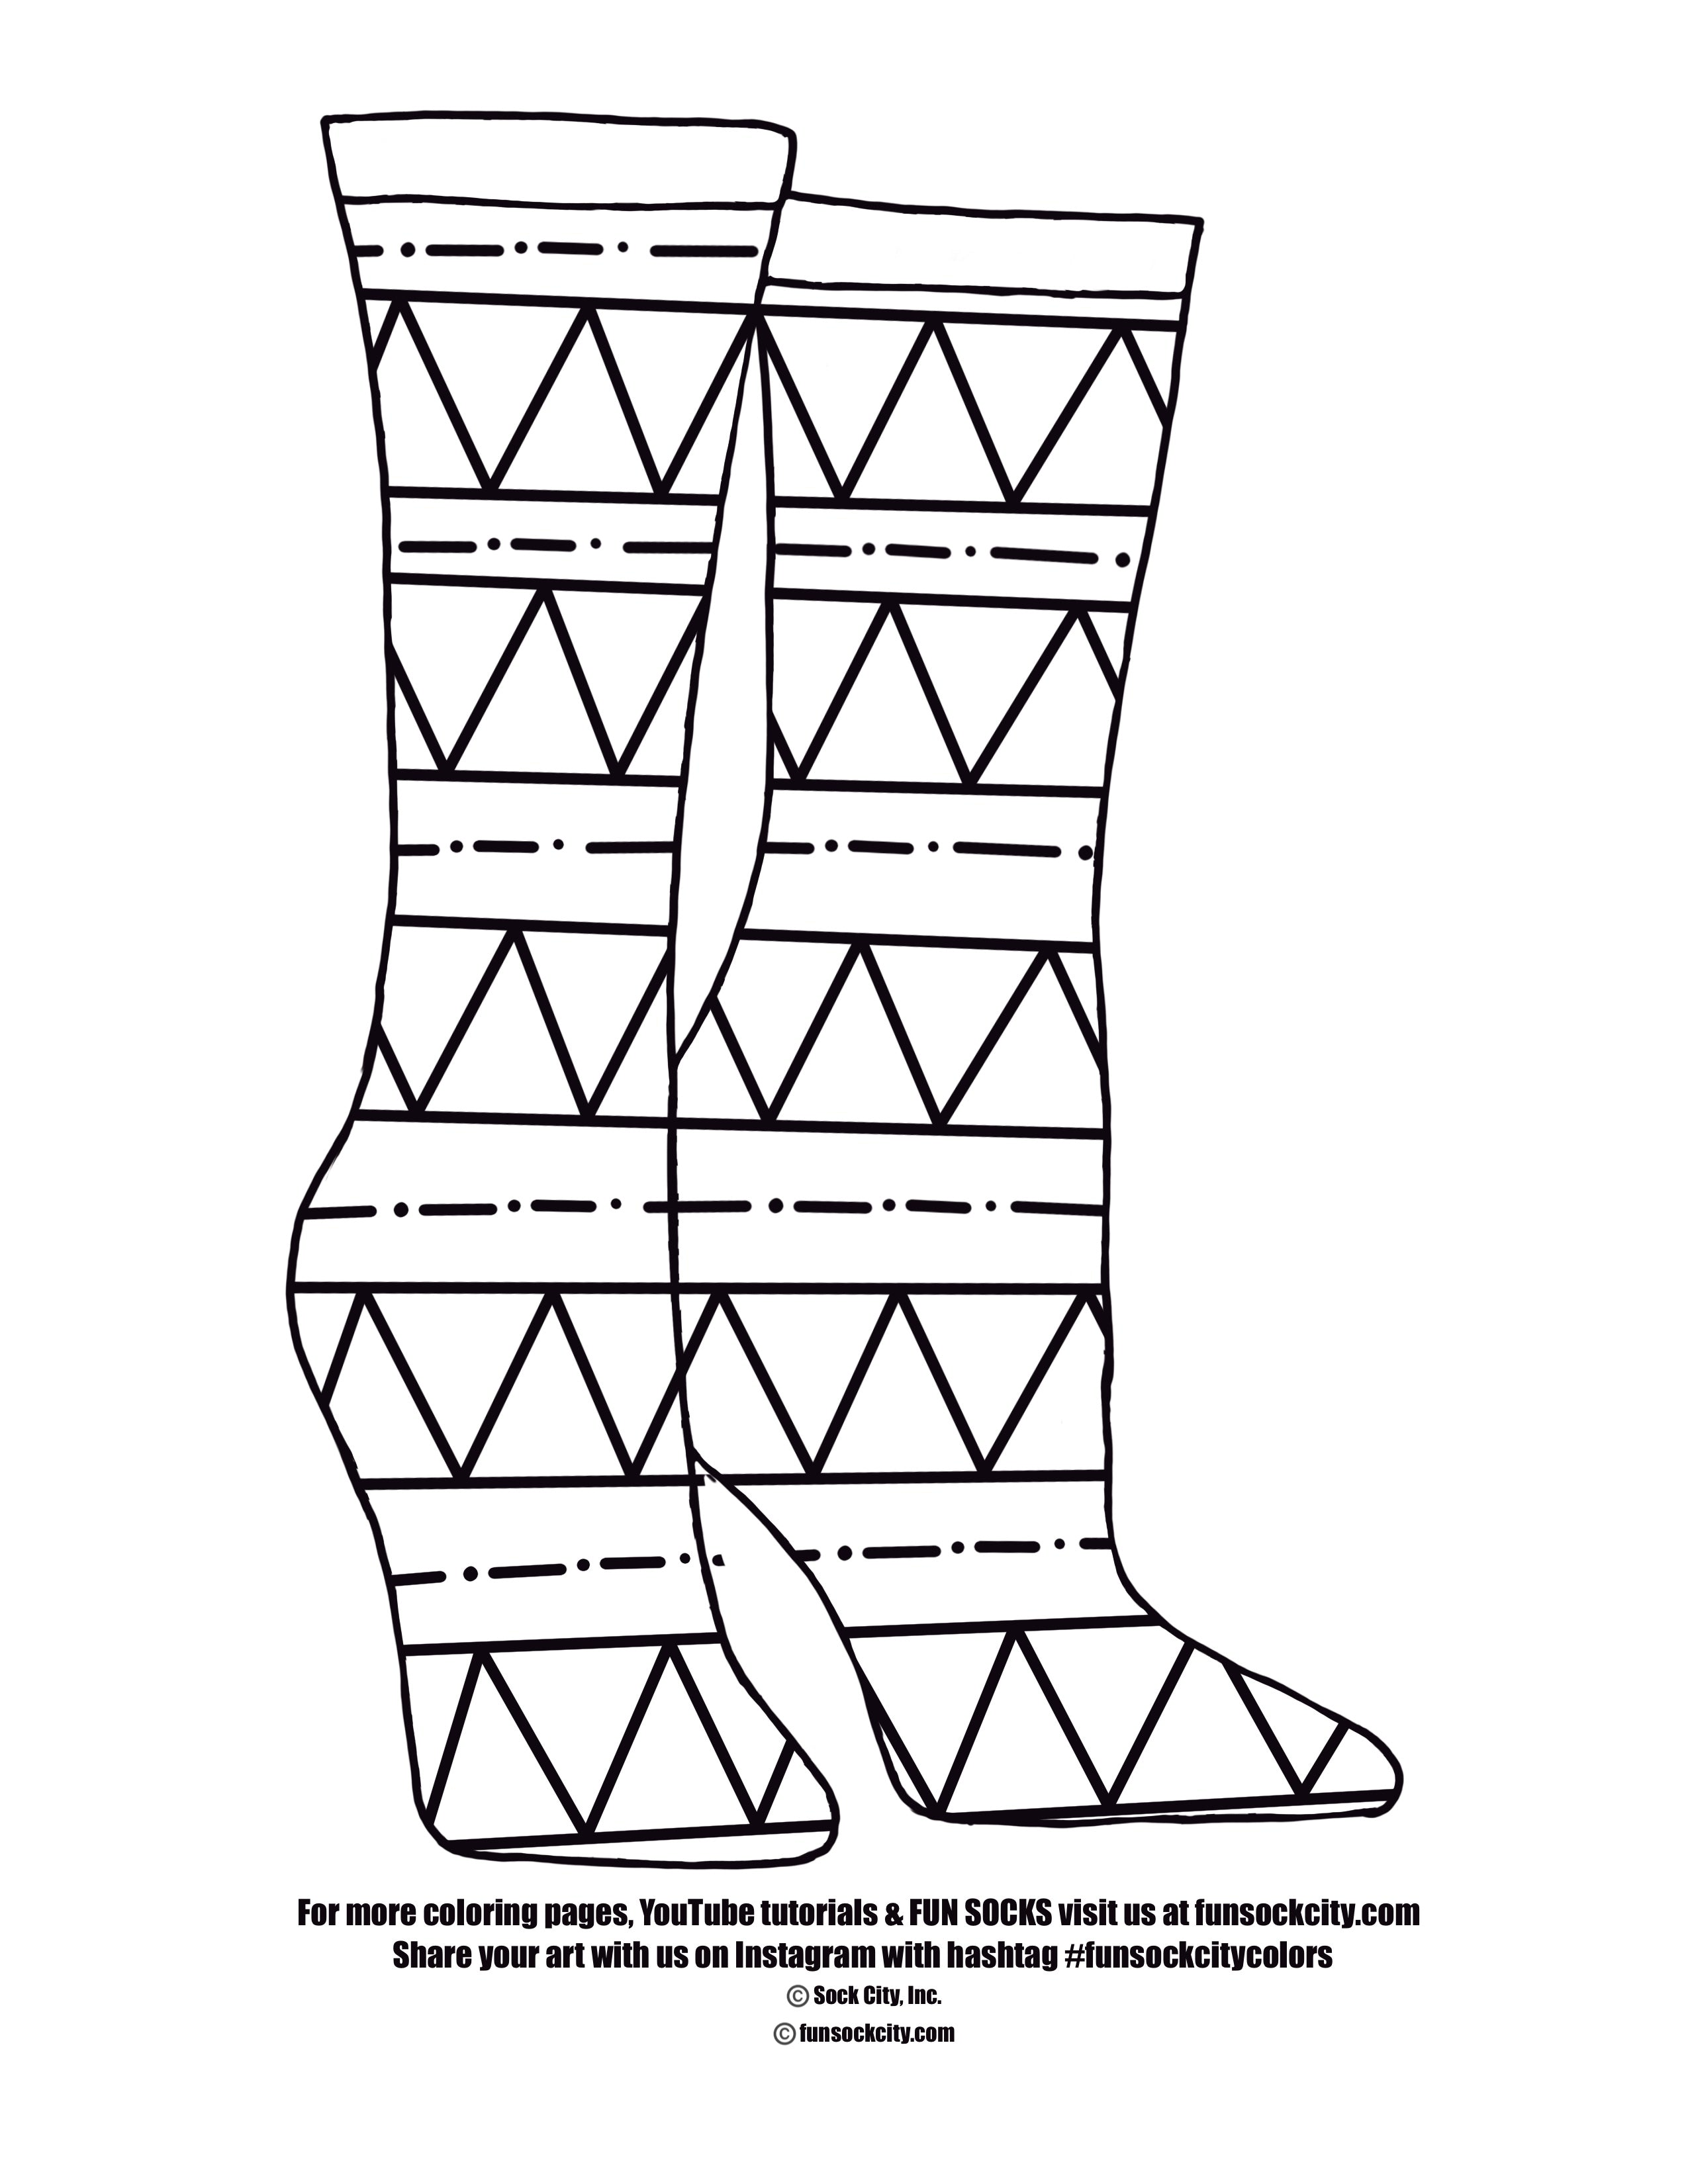 Hills and Valleys Sock Coloring Page